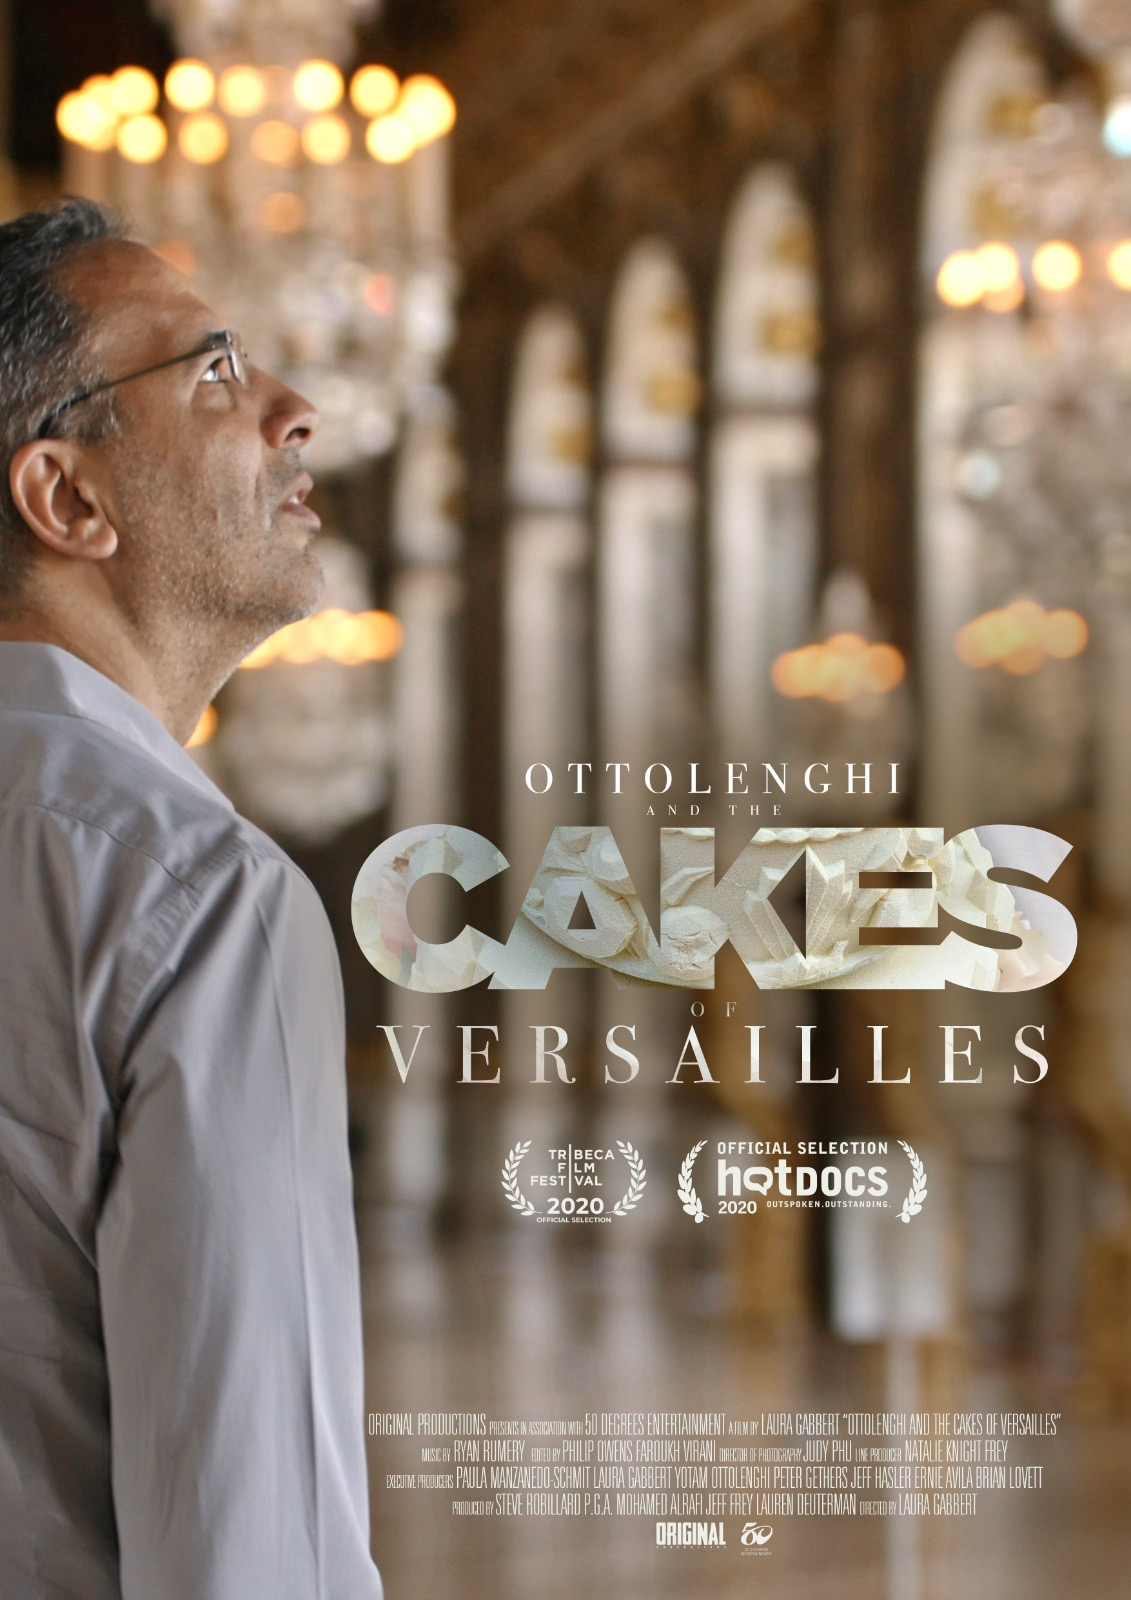 Ottolenghi and the Cakes of Versailles kapak